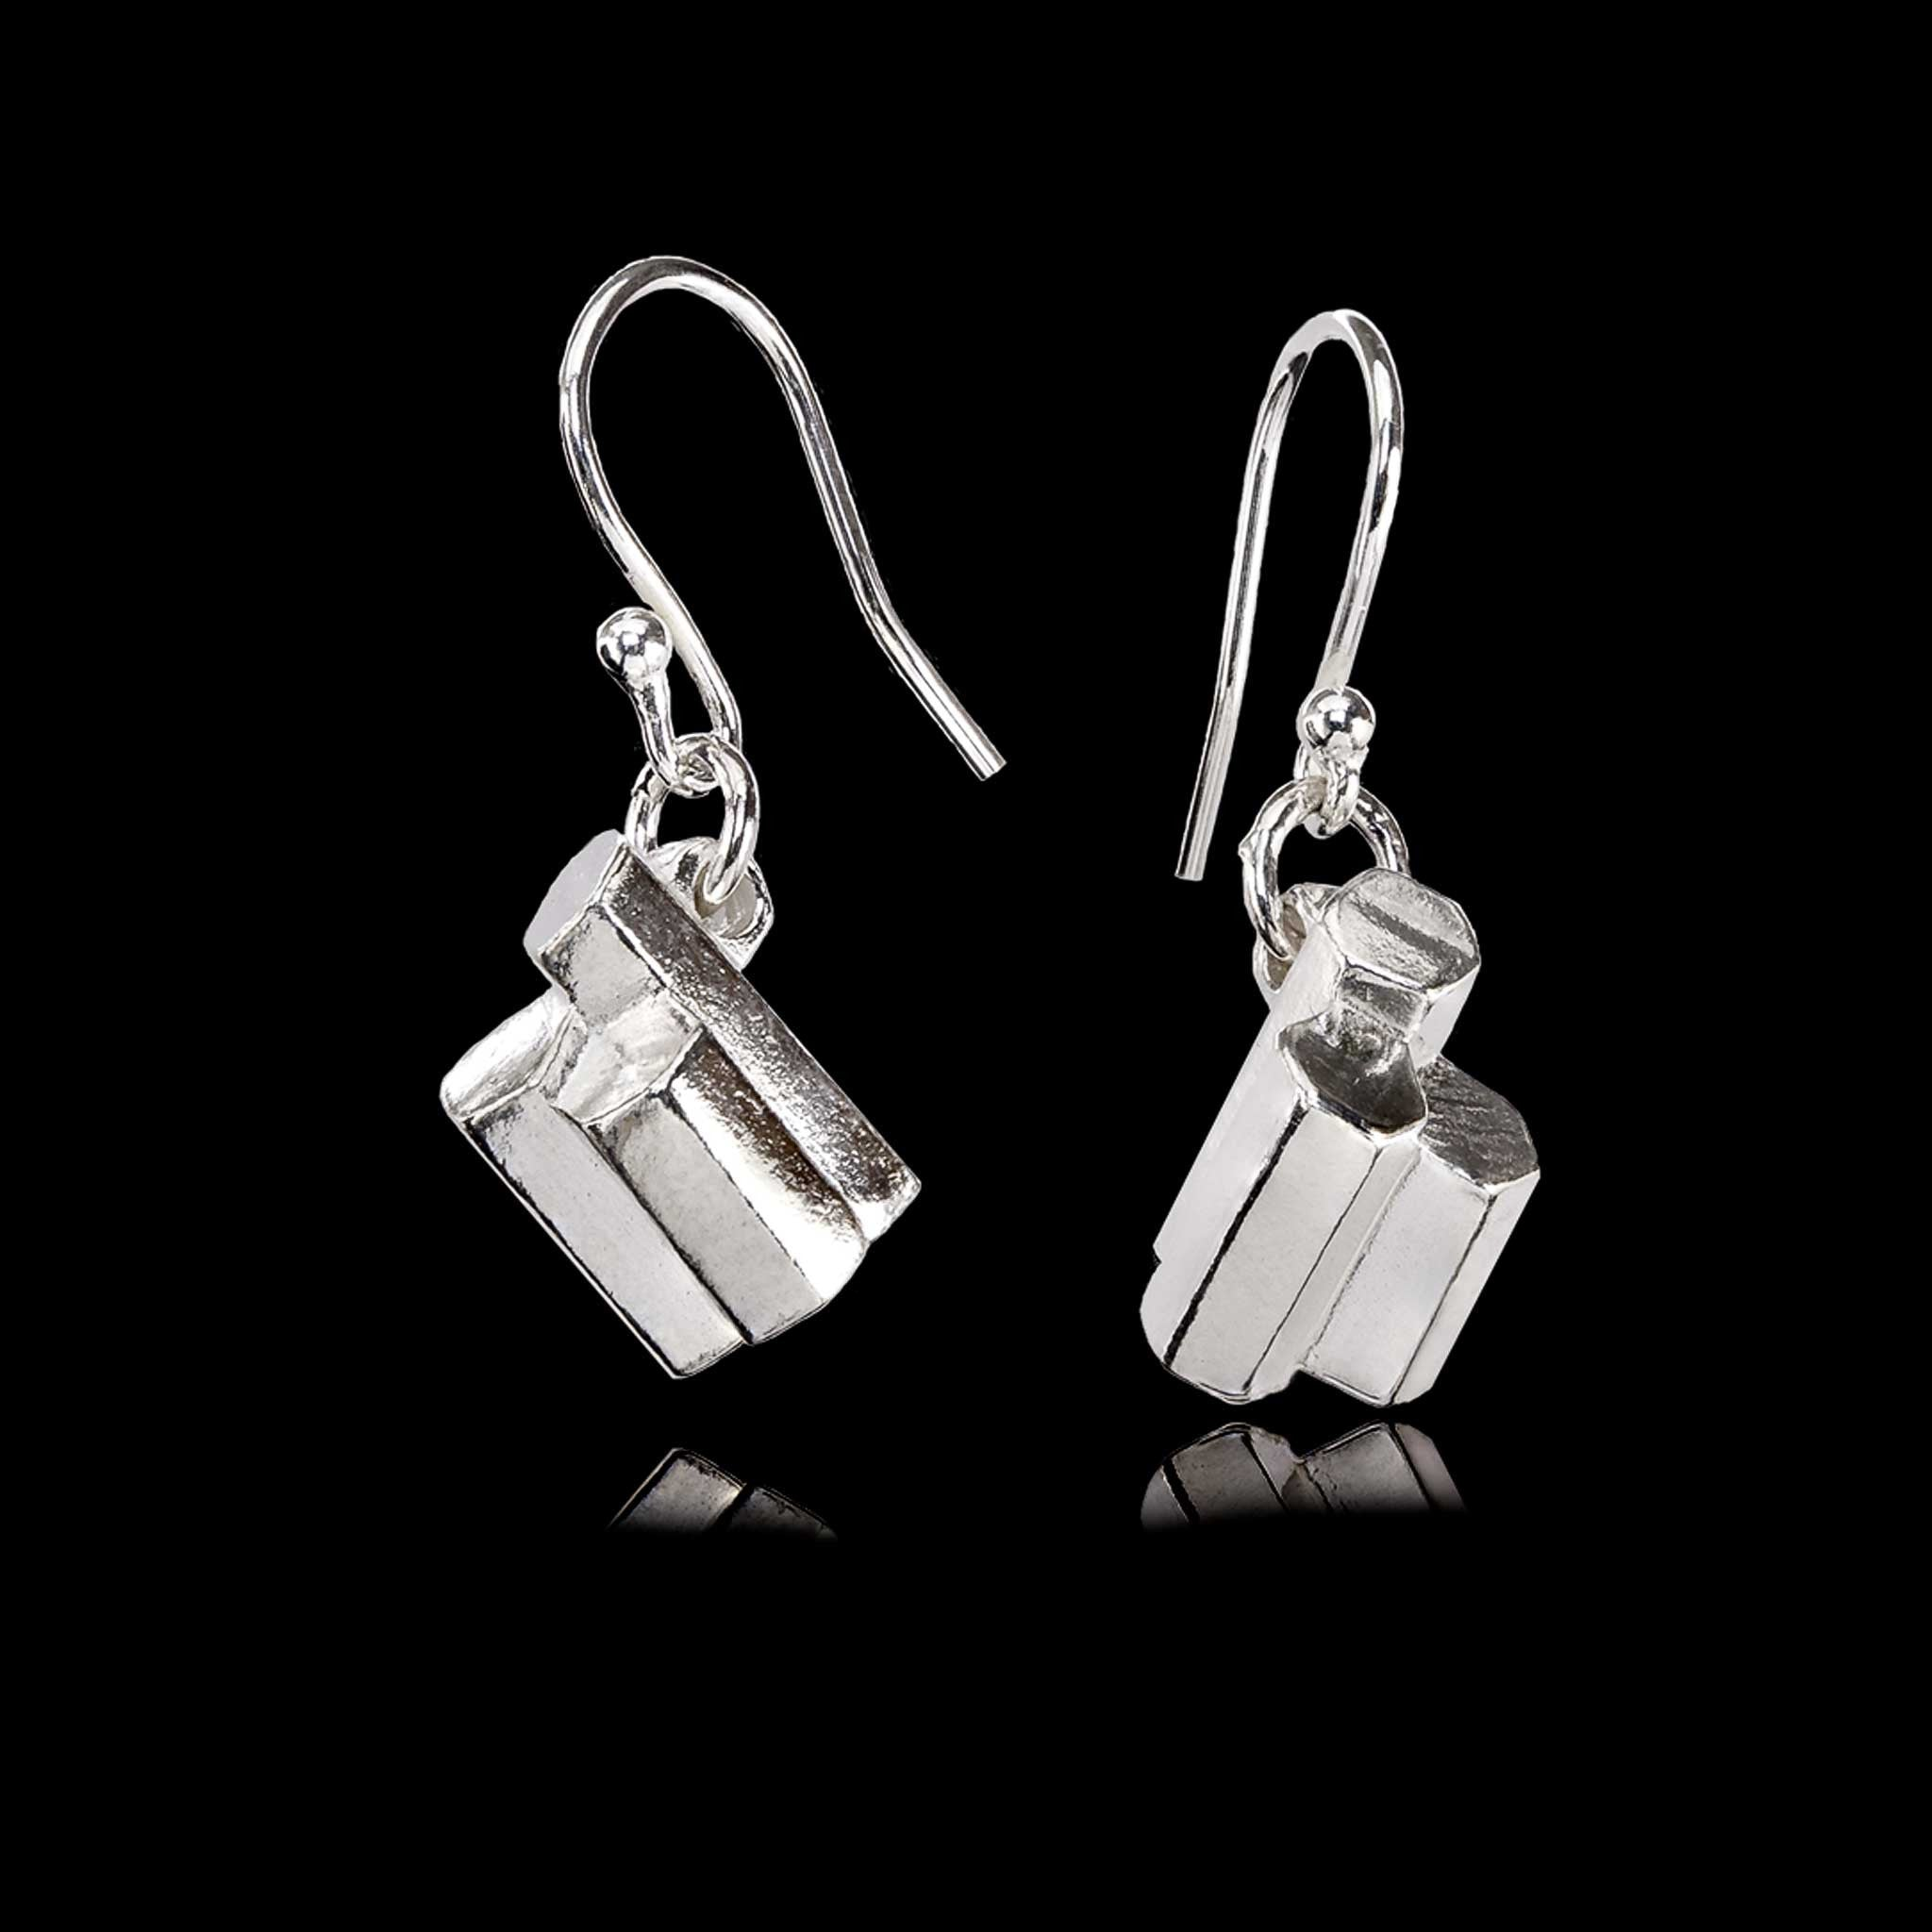 Giant's Causeway Silver Drop Earrings, hallmarked and gift boxed with worldwide postage available.